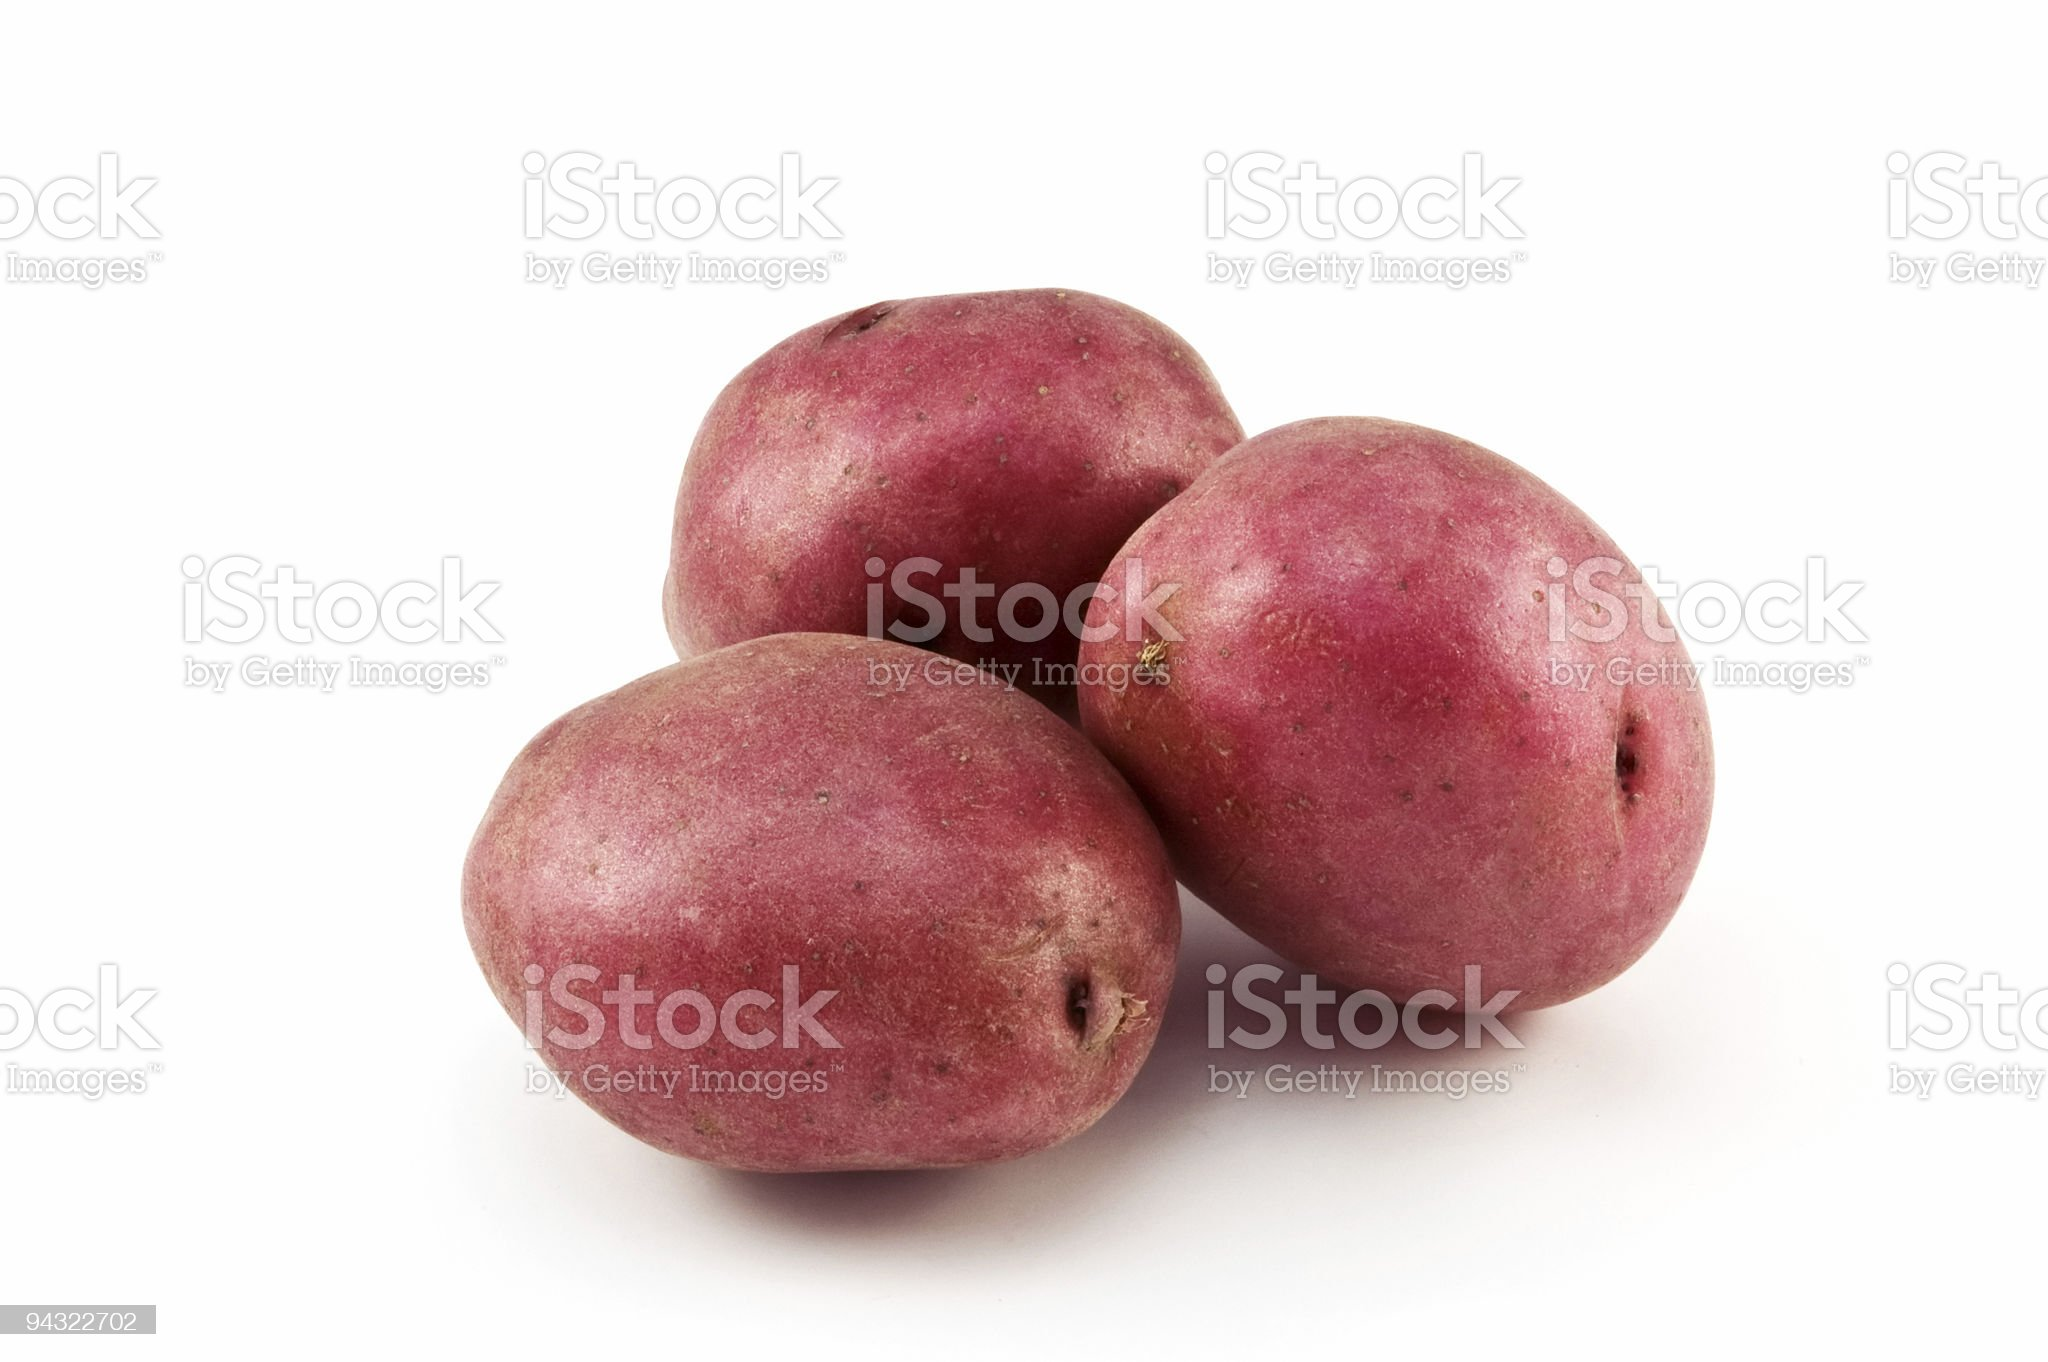 Three red potatoes on a white background royalty-free stock photo